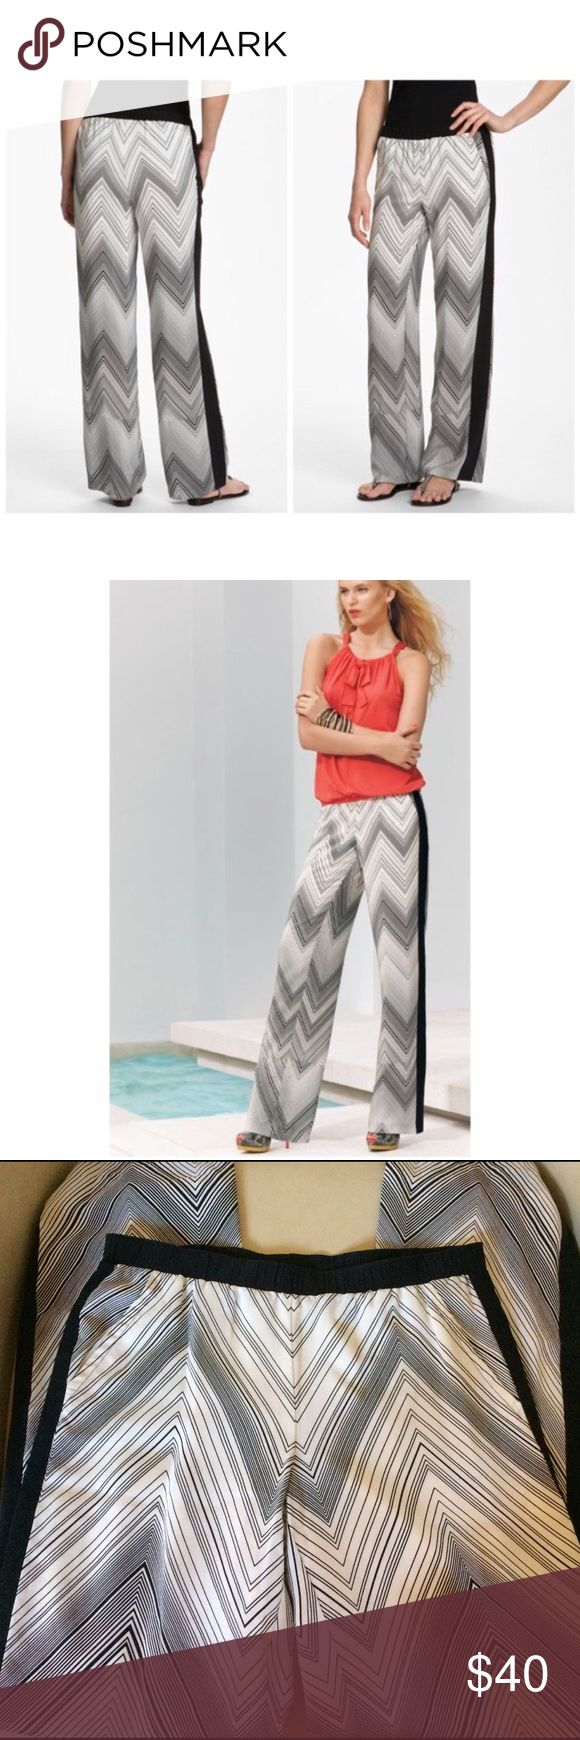 17 Best Ideas About Chevron Pants On Pinterest Pillowcase Dresses Ruffle Pants And Baby Girl